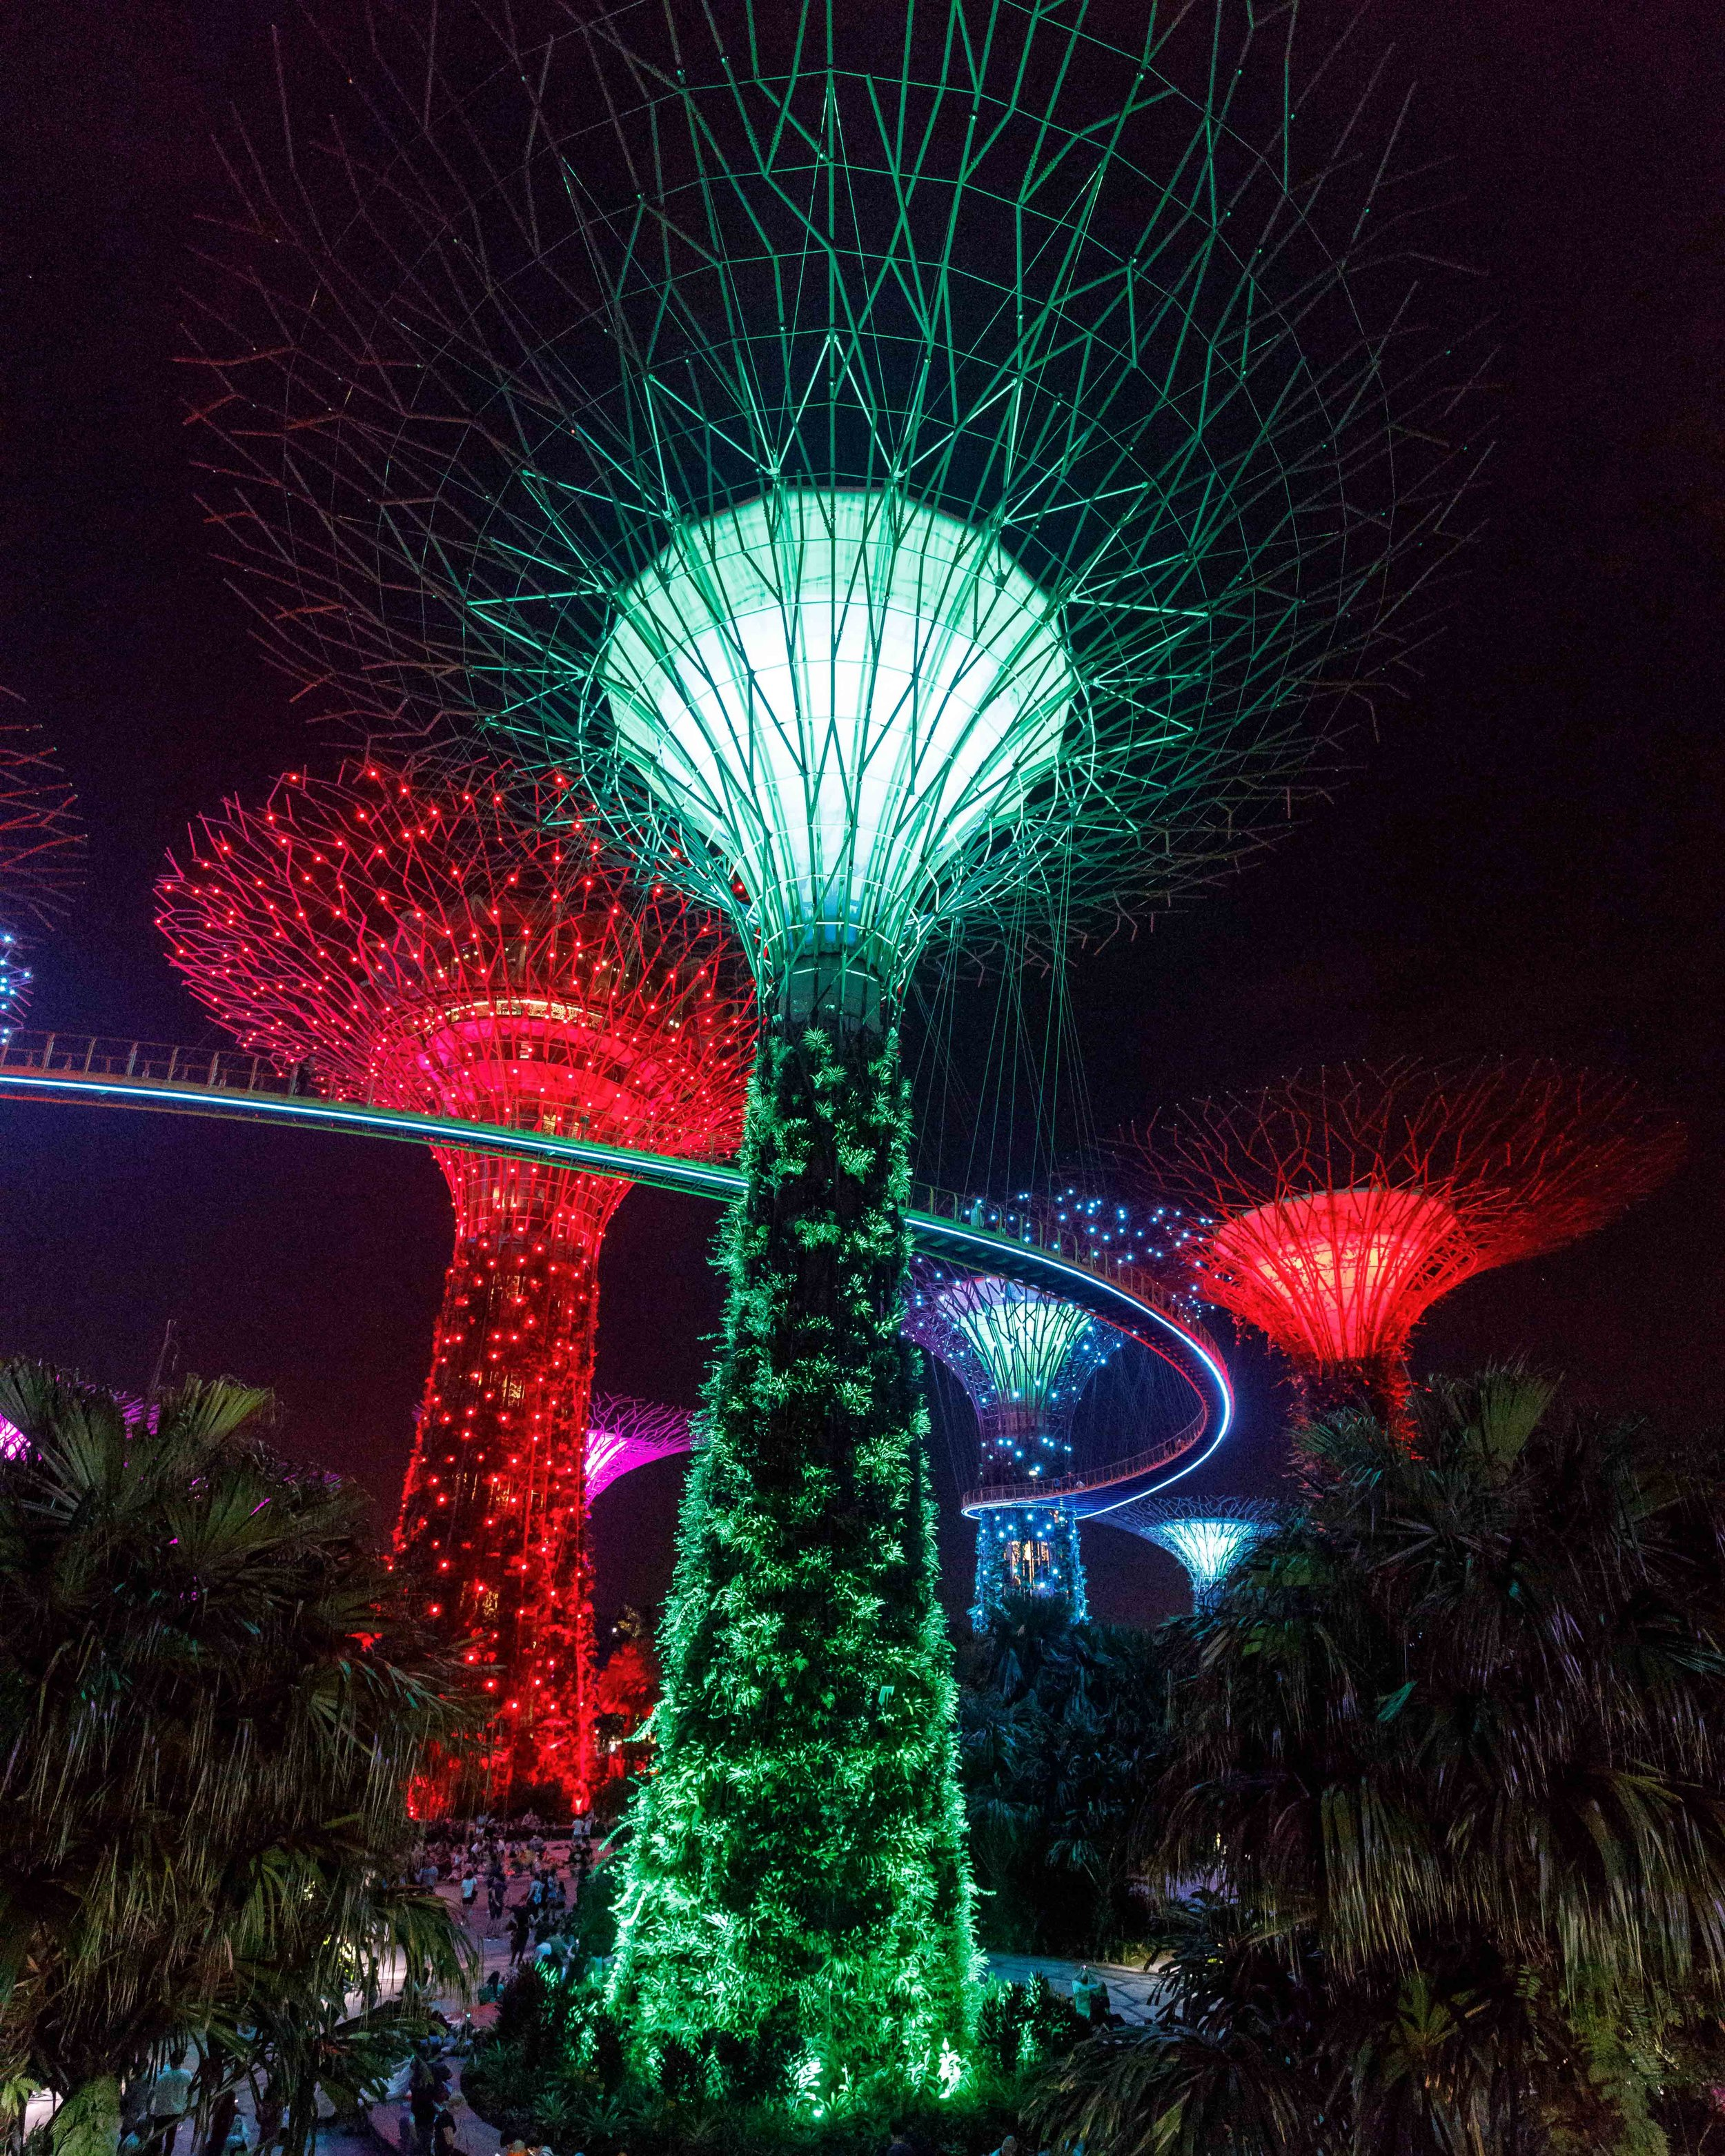 Instagrammable Singapore - Gardens by the bay at night